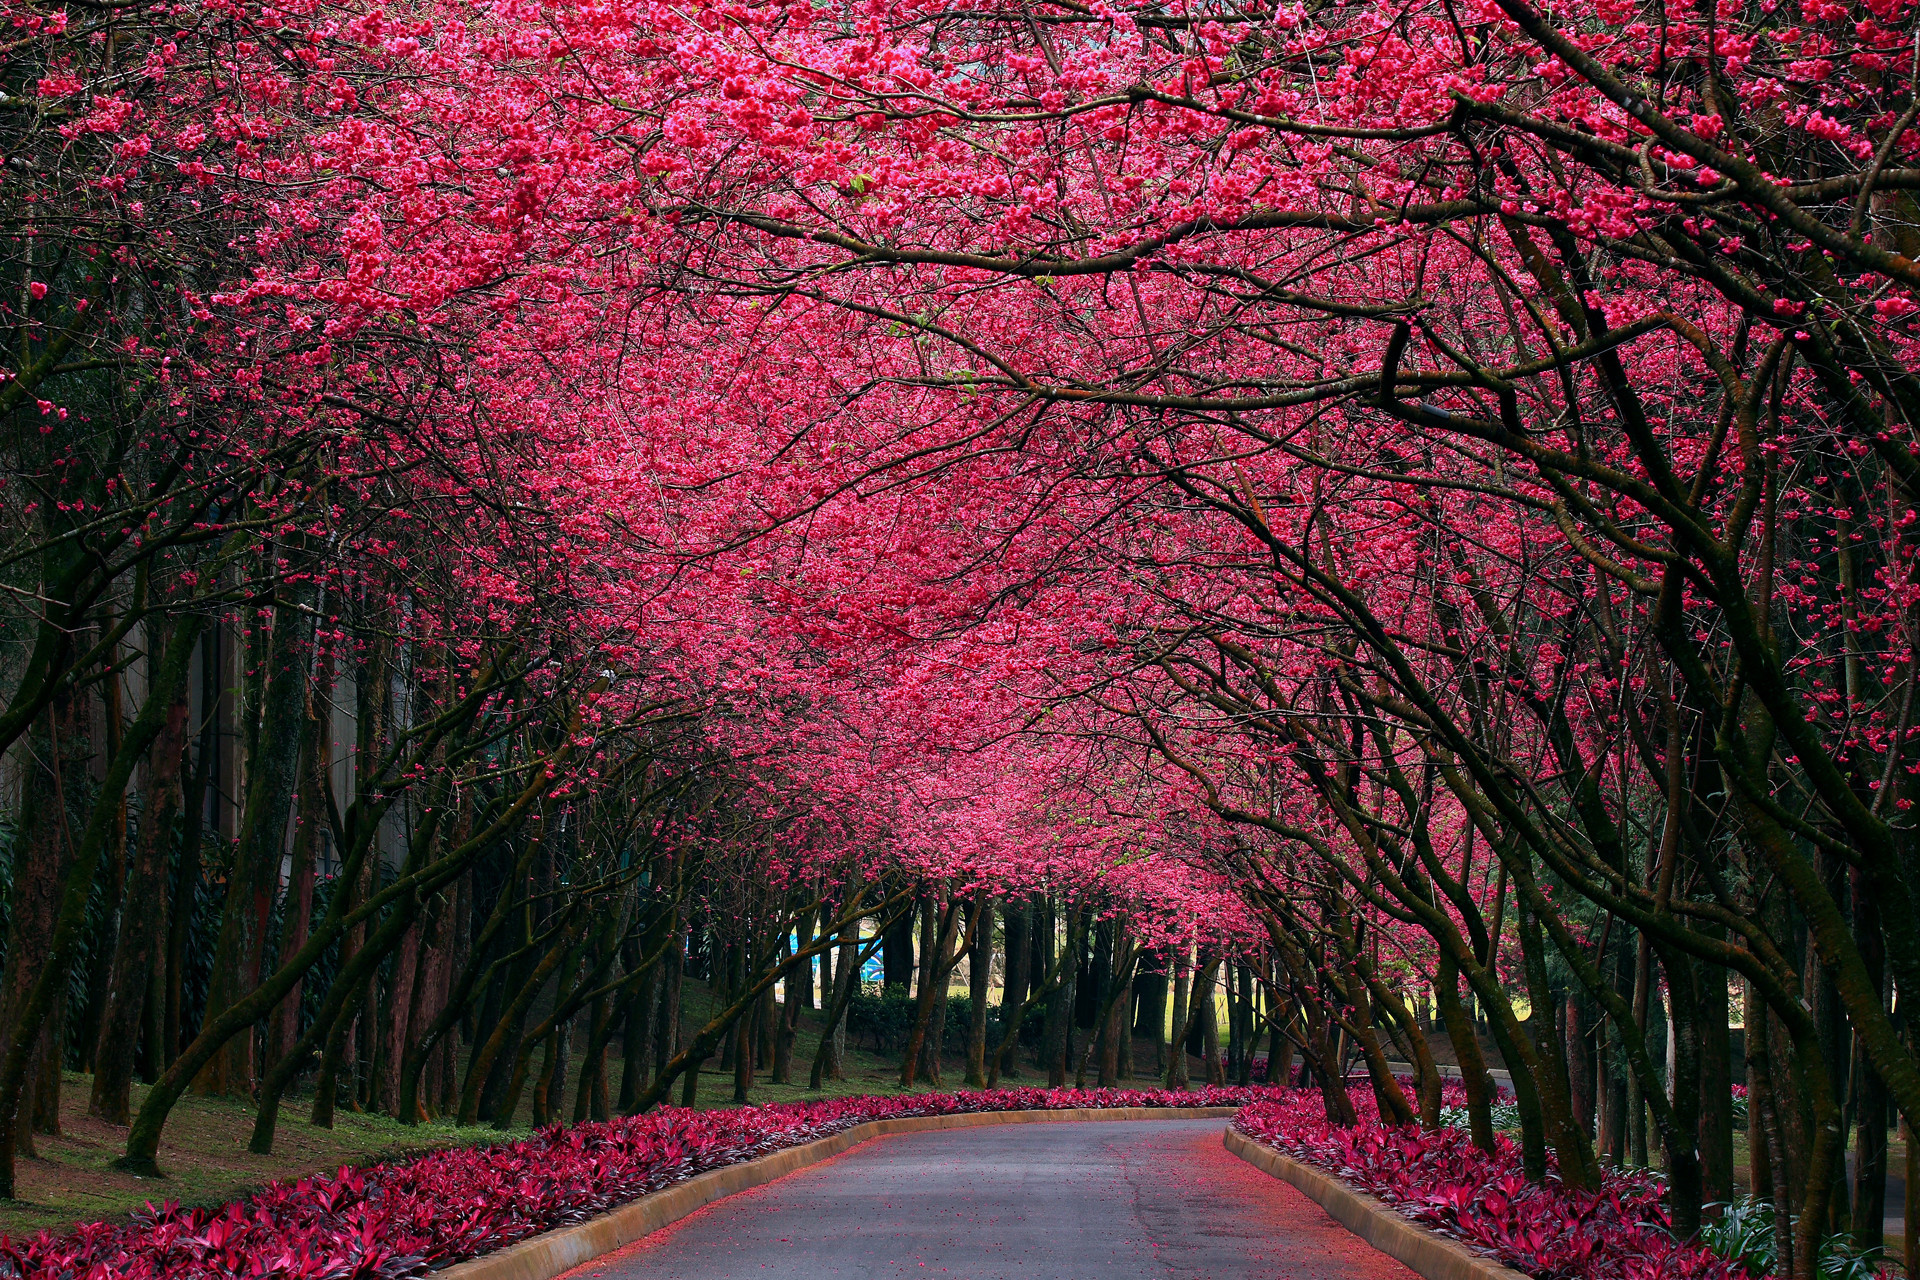 Download mobile wallpaper Landscape, Flowers, Trees, Roads for free.